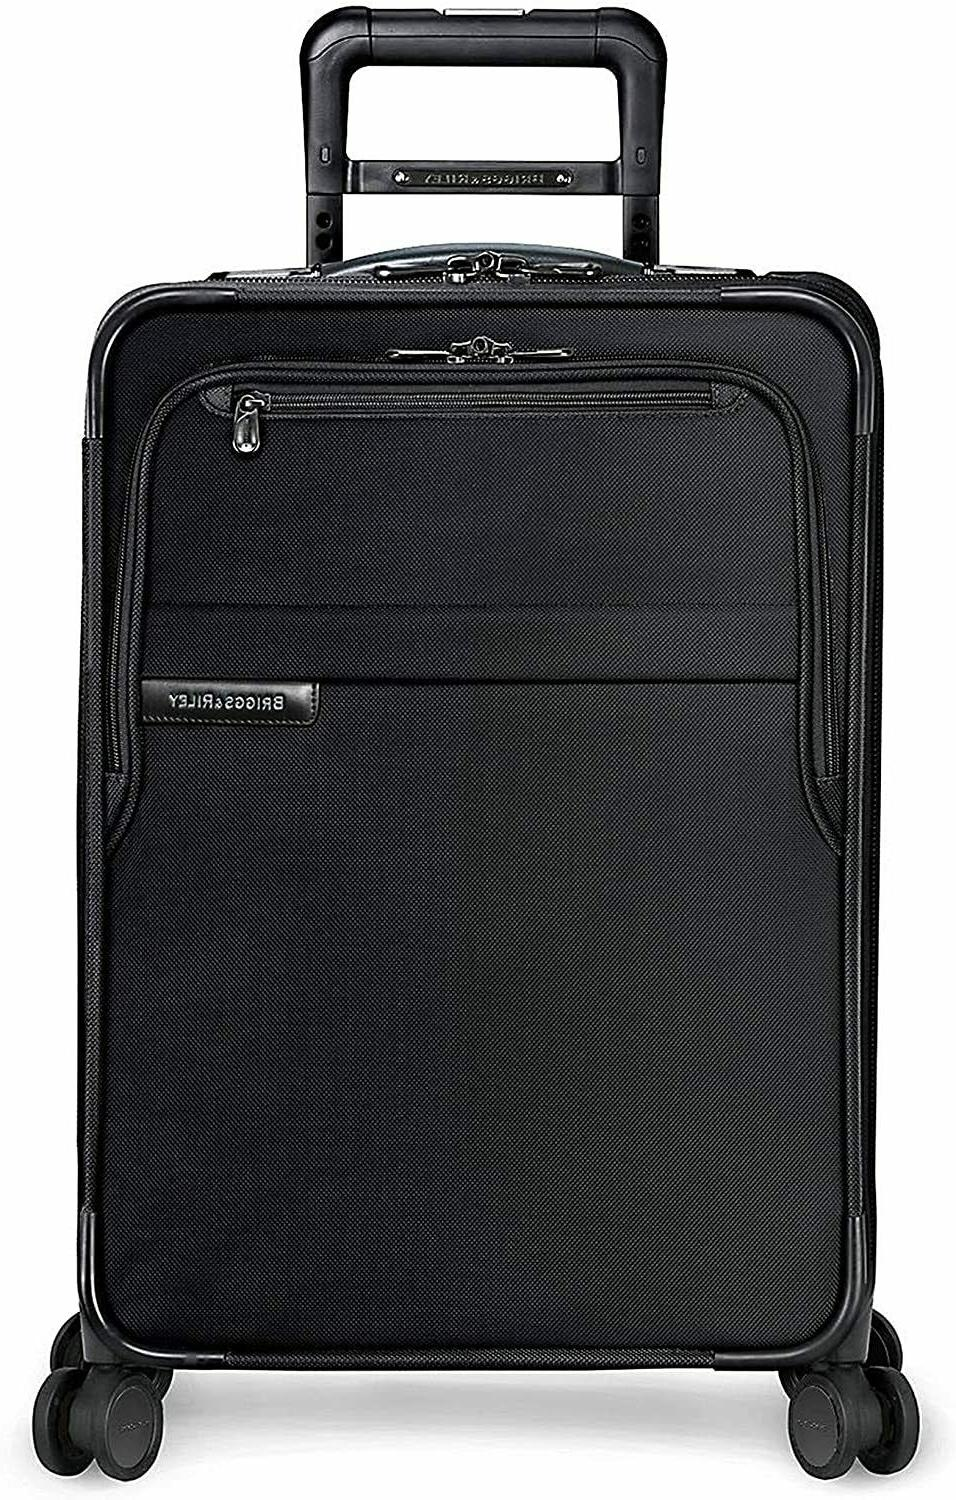 Briggs Riley Baseline Carry-On Expandable 22 4 wheel Spinner